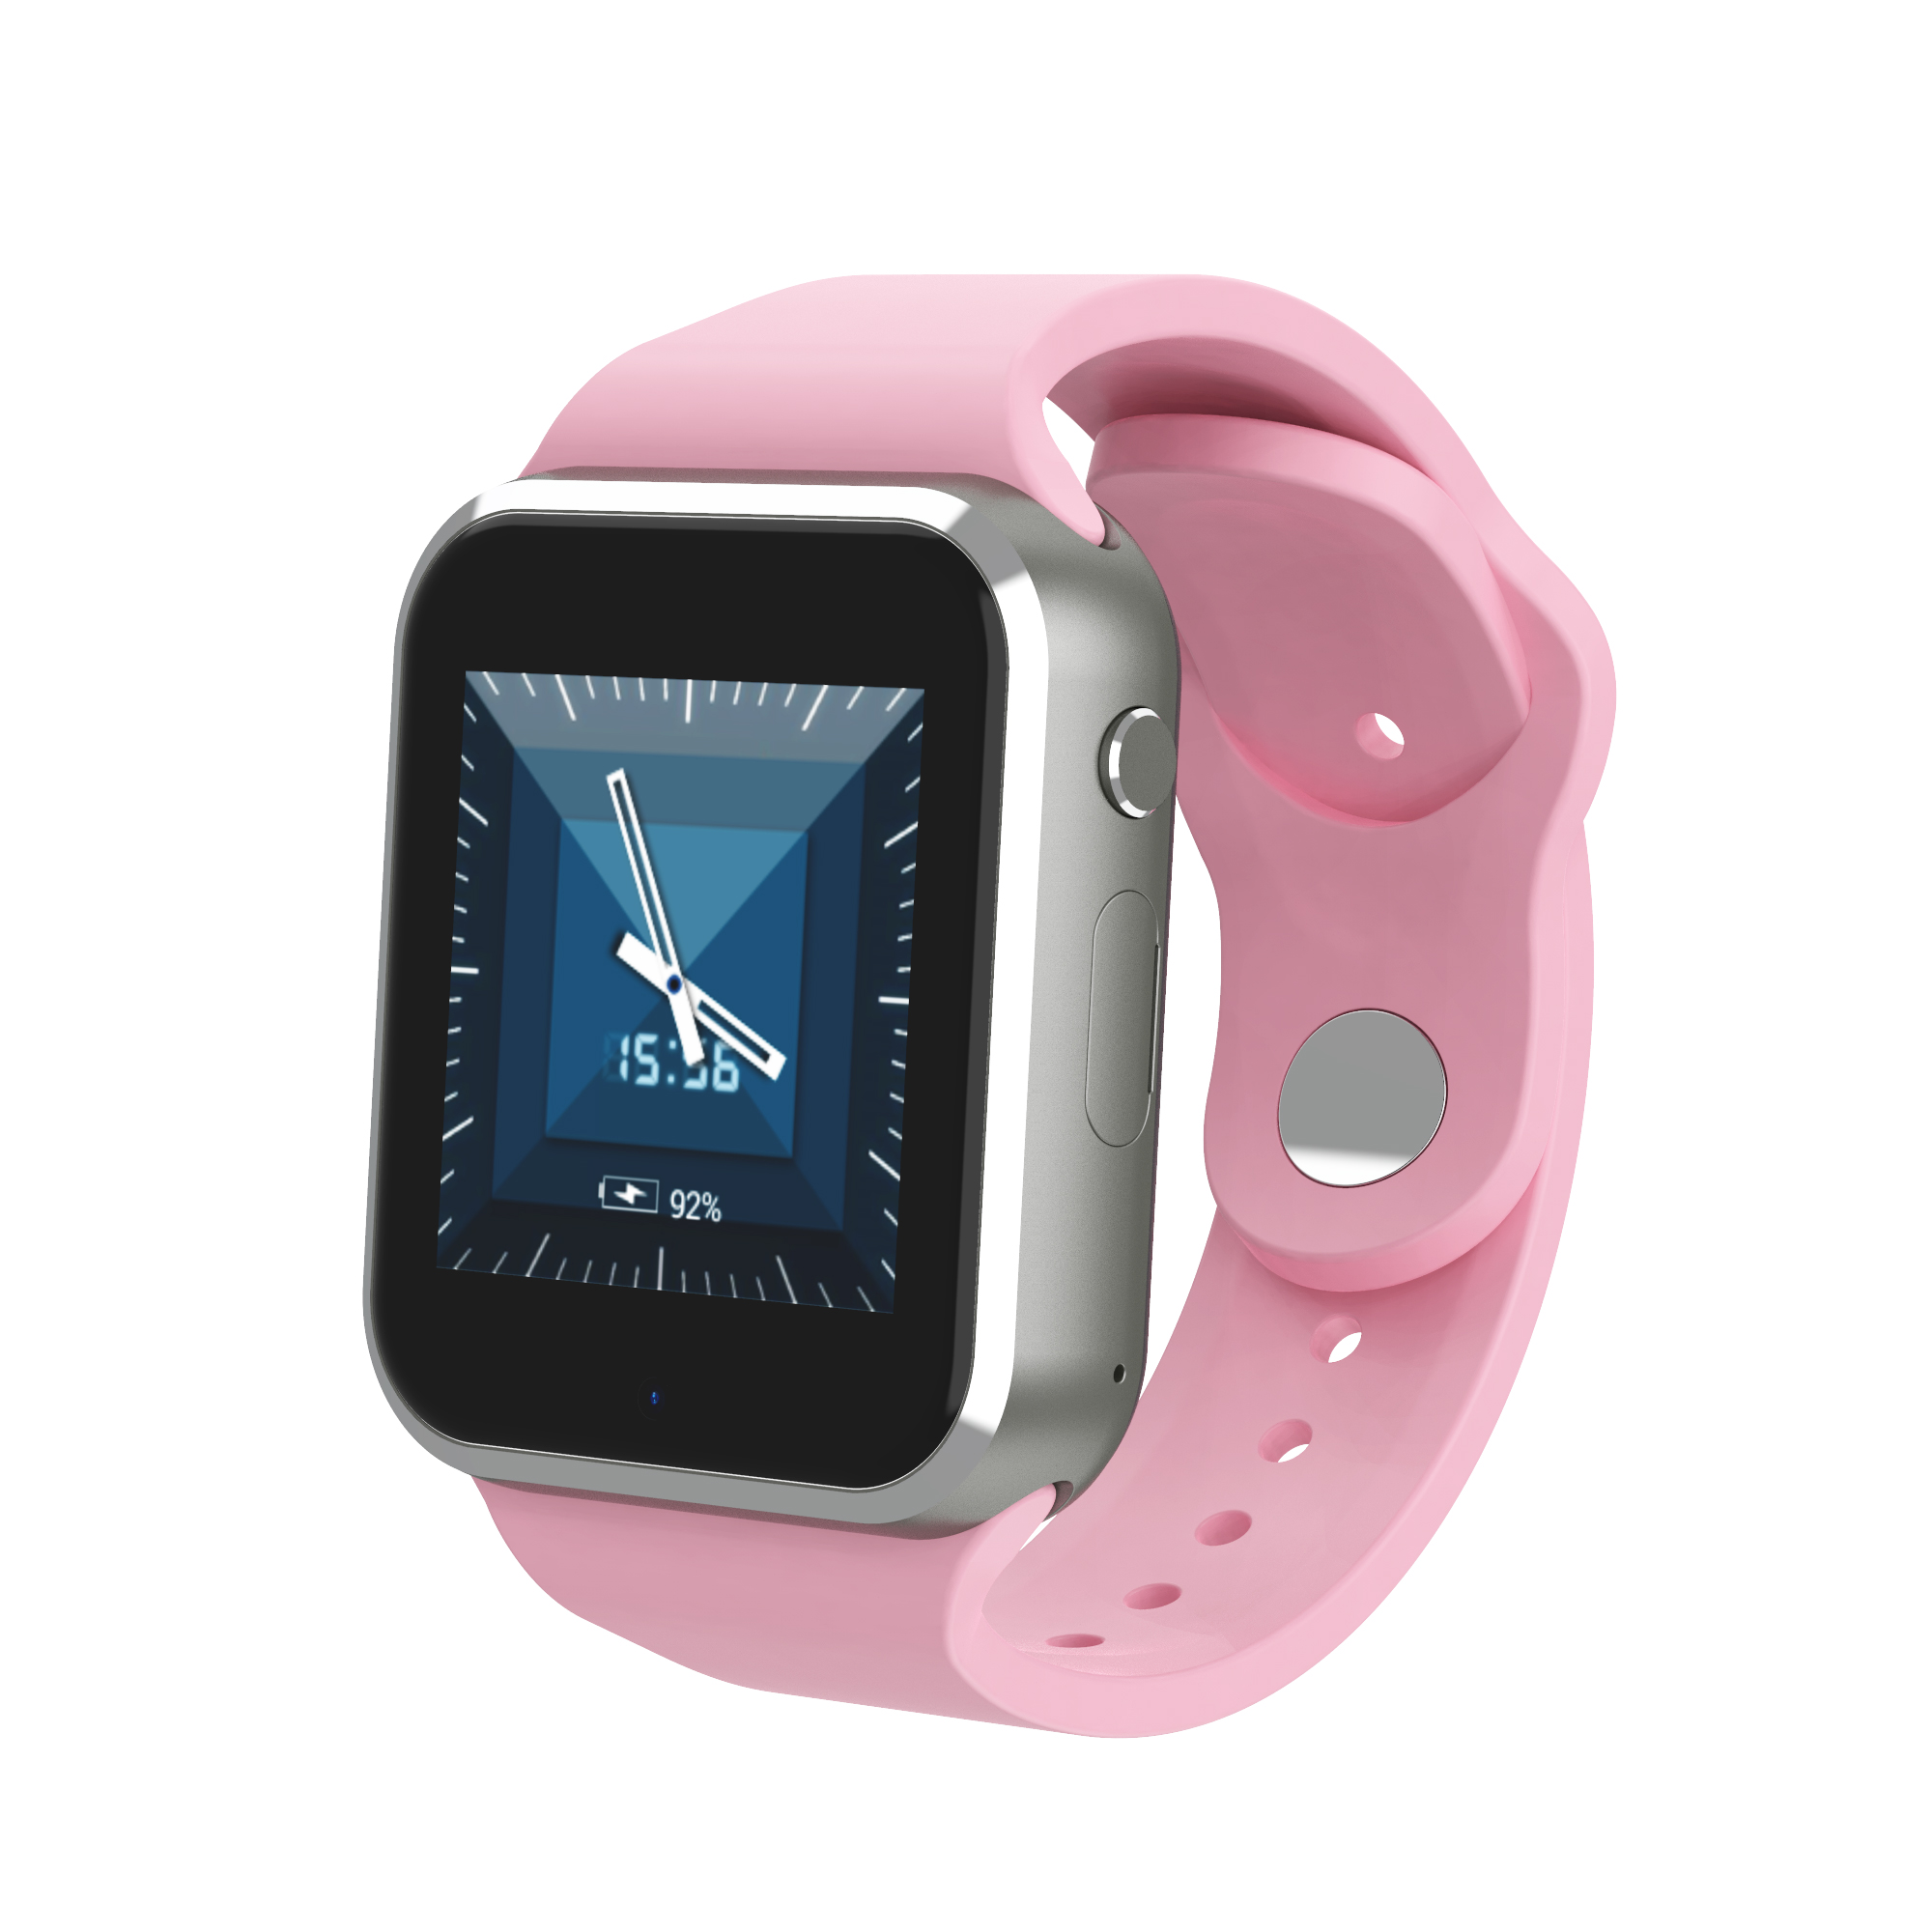 2019 new arrivals square alloy <strong>case</strong> silicon rubber strap <strong>Q10</strong> sport smart watch colorful